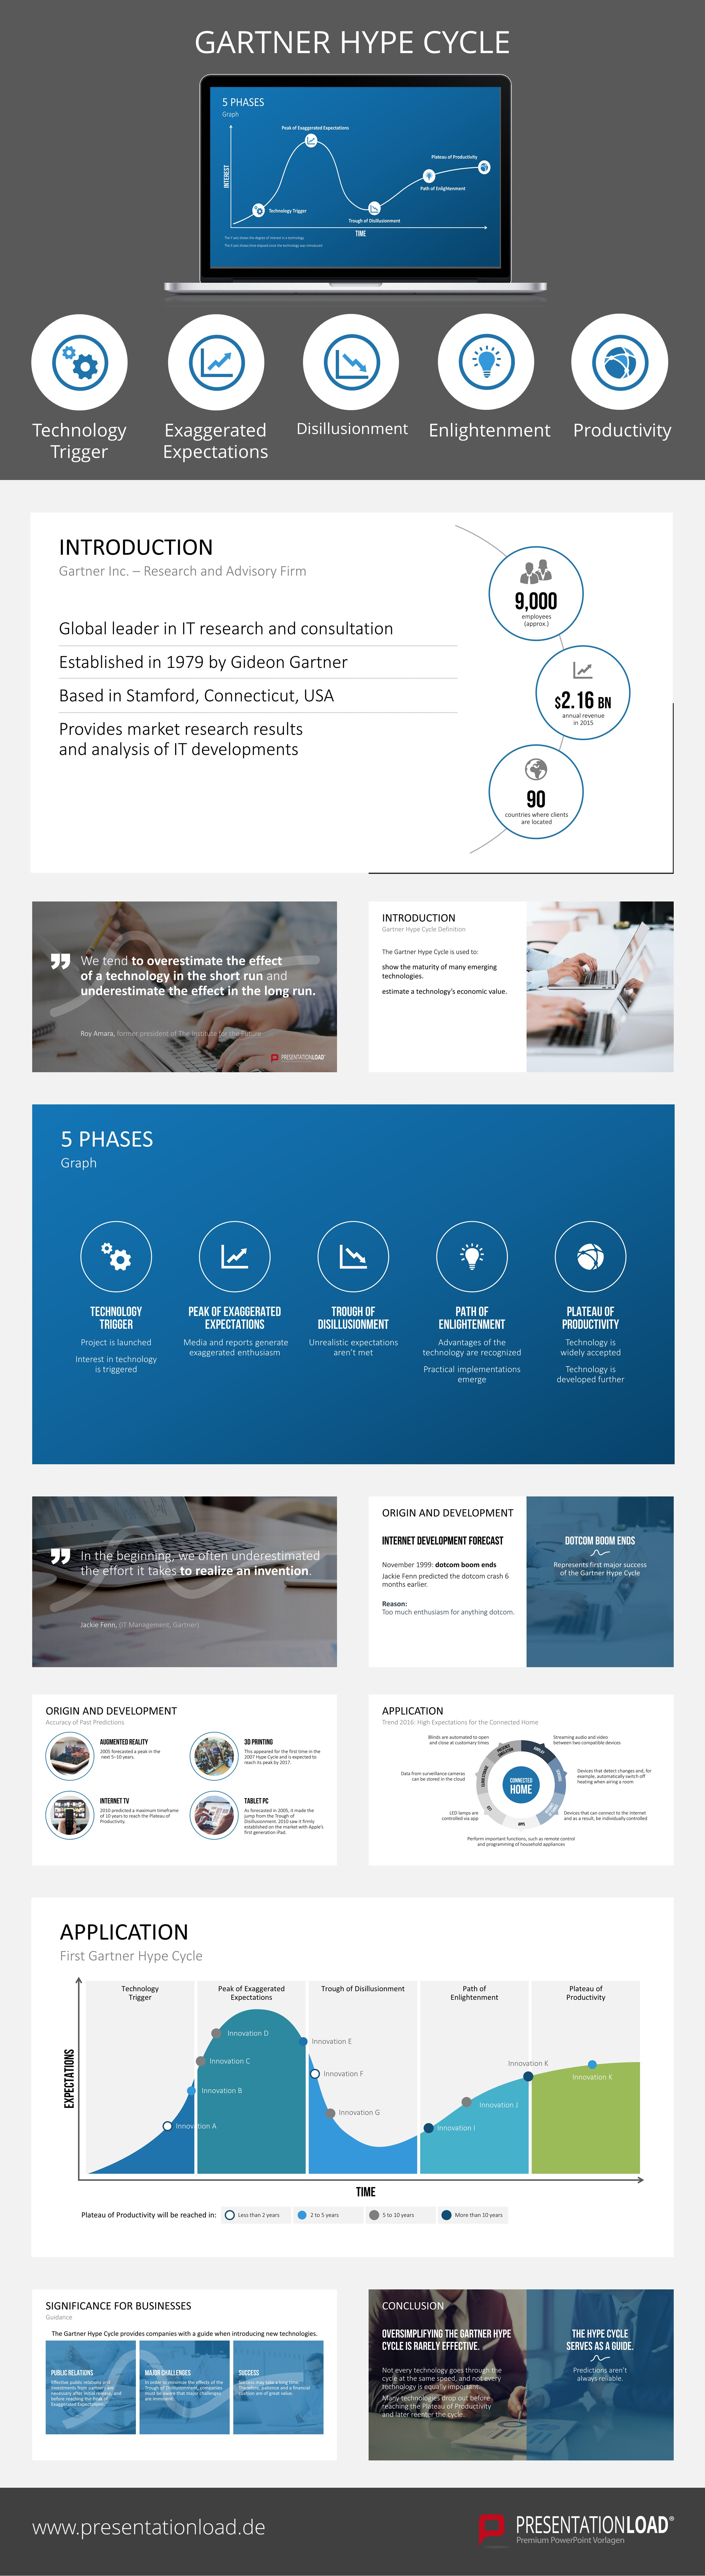 Present Adequately The Five Phases Of The Gartner Hype Cycle With Our High Quality Powerpoint Template Certificate Templates Card Template Card Templates